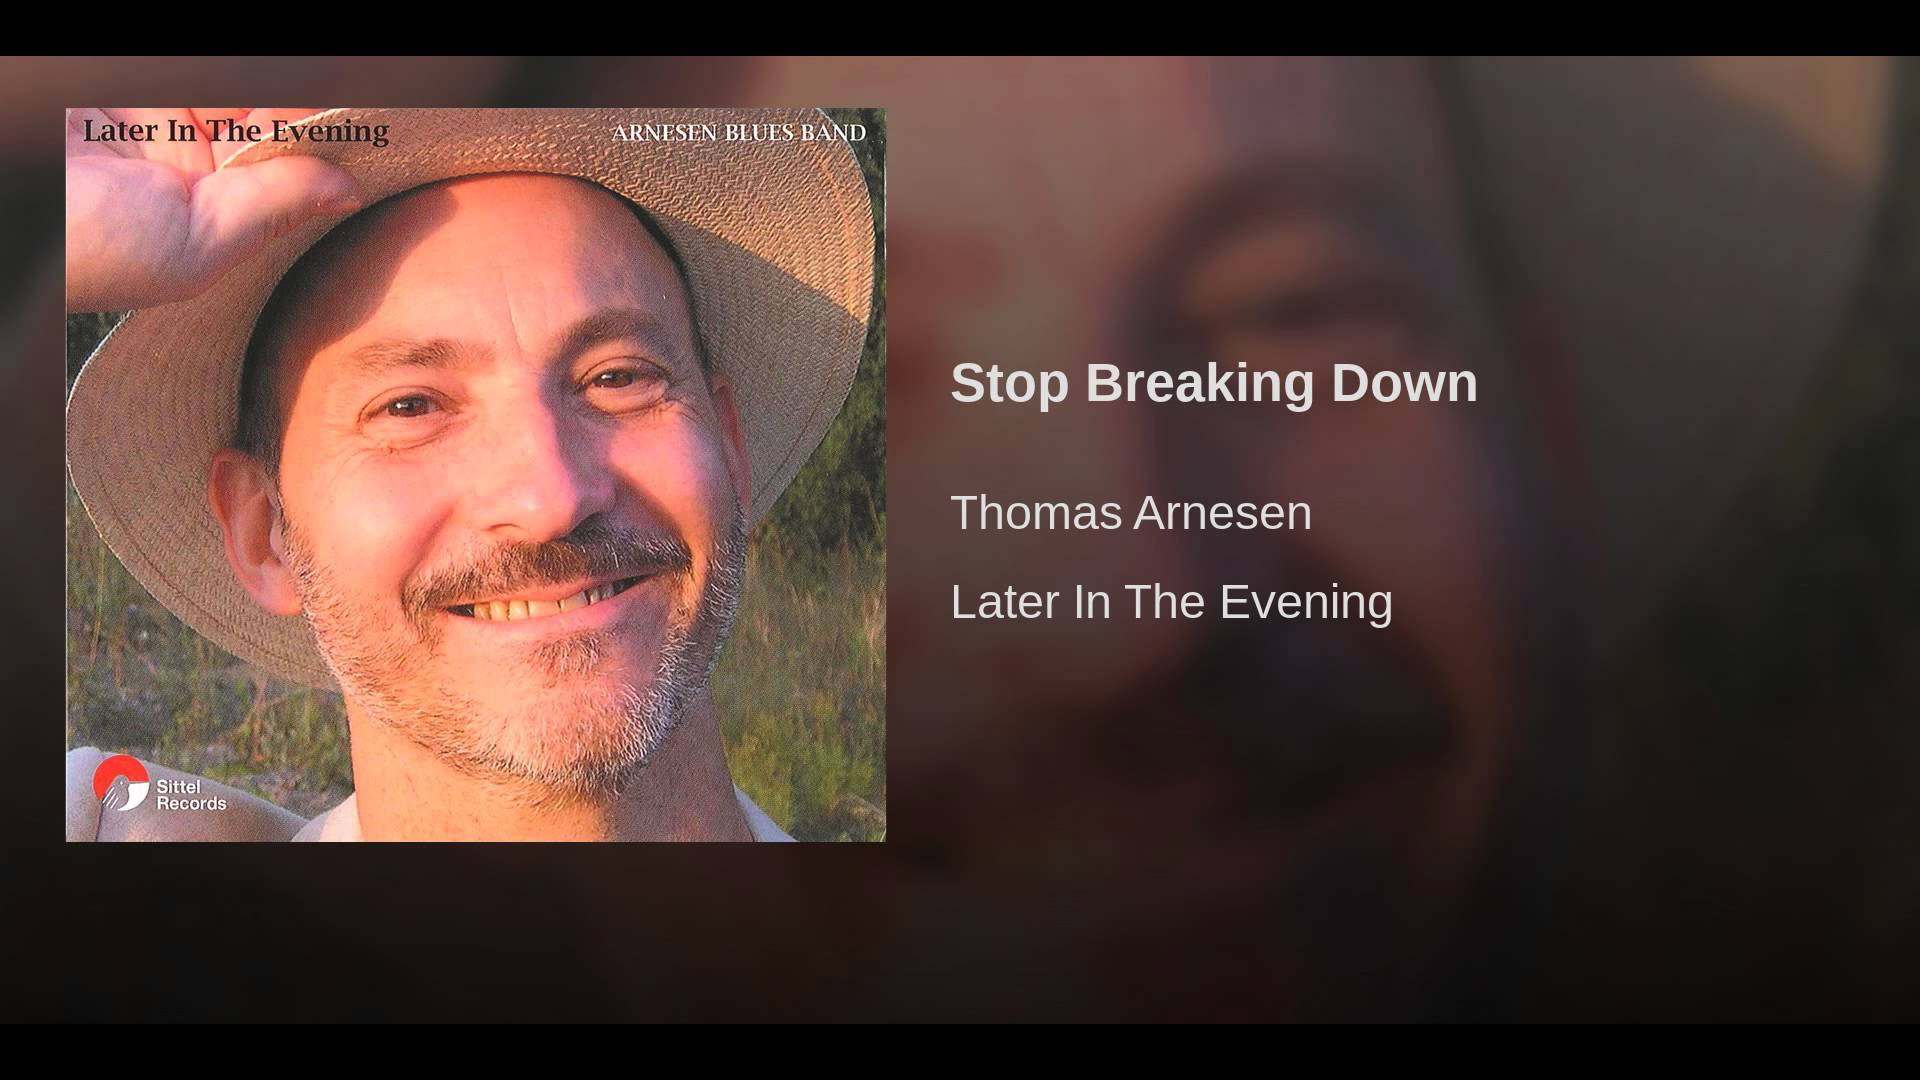 Stop Breaking Down